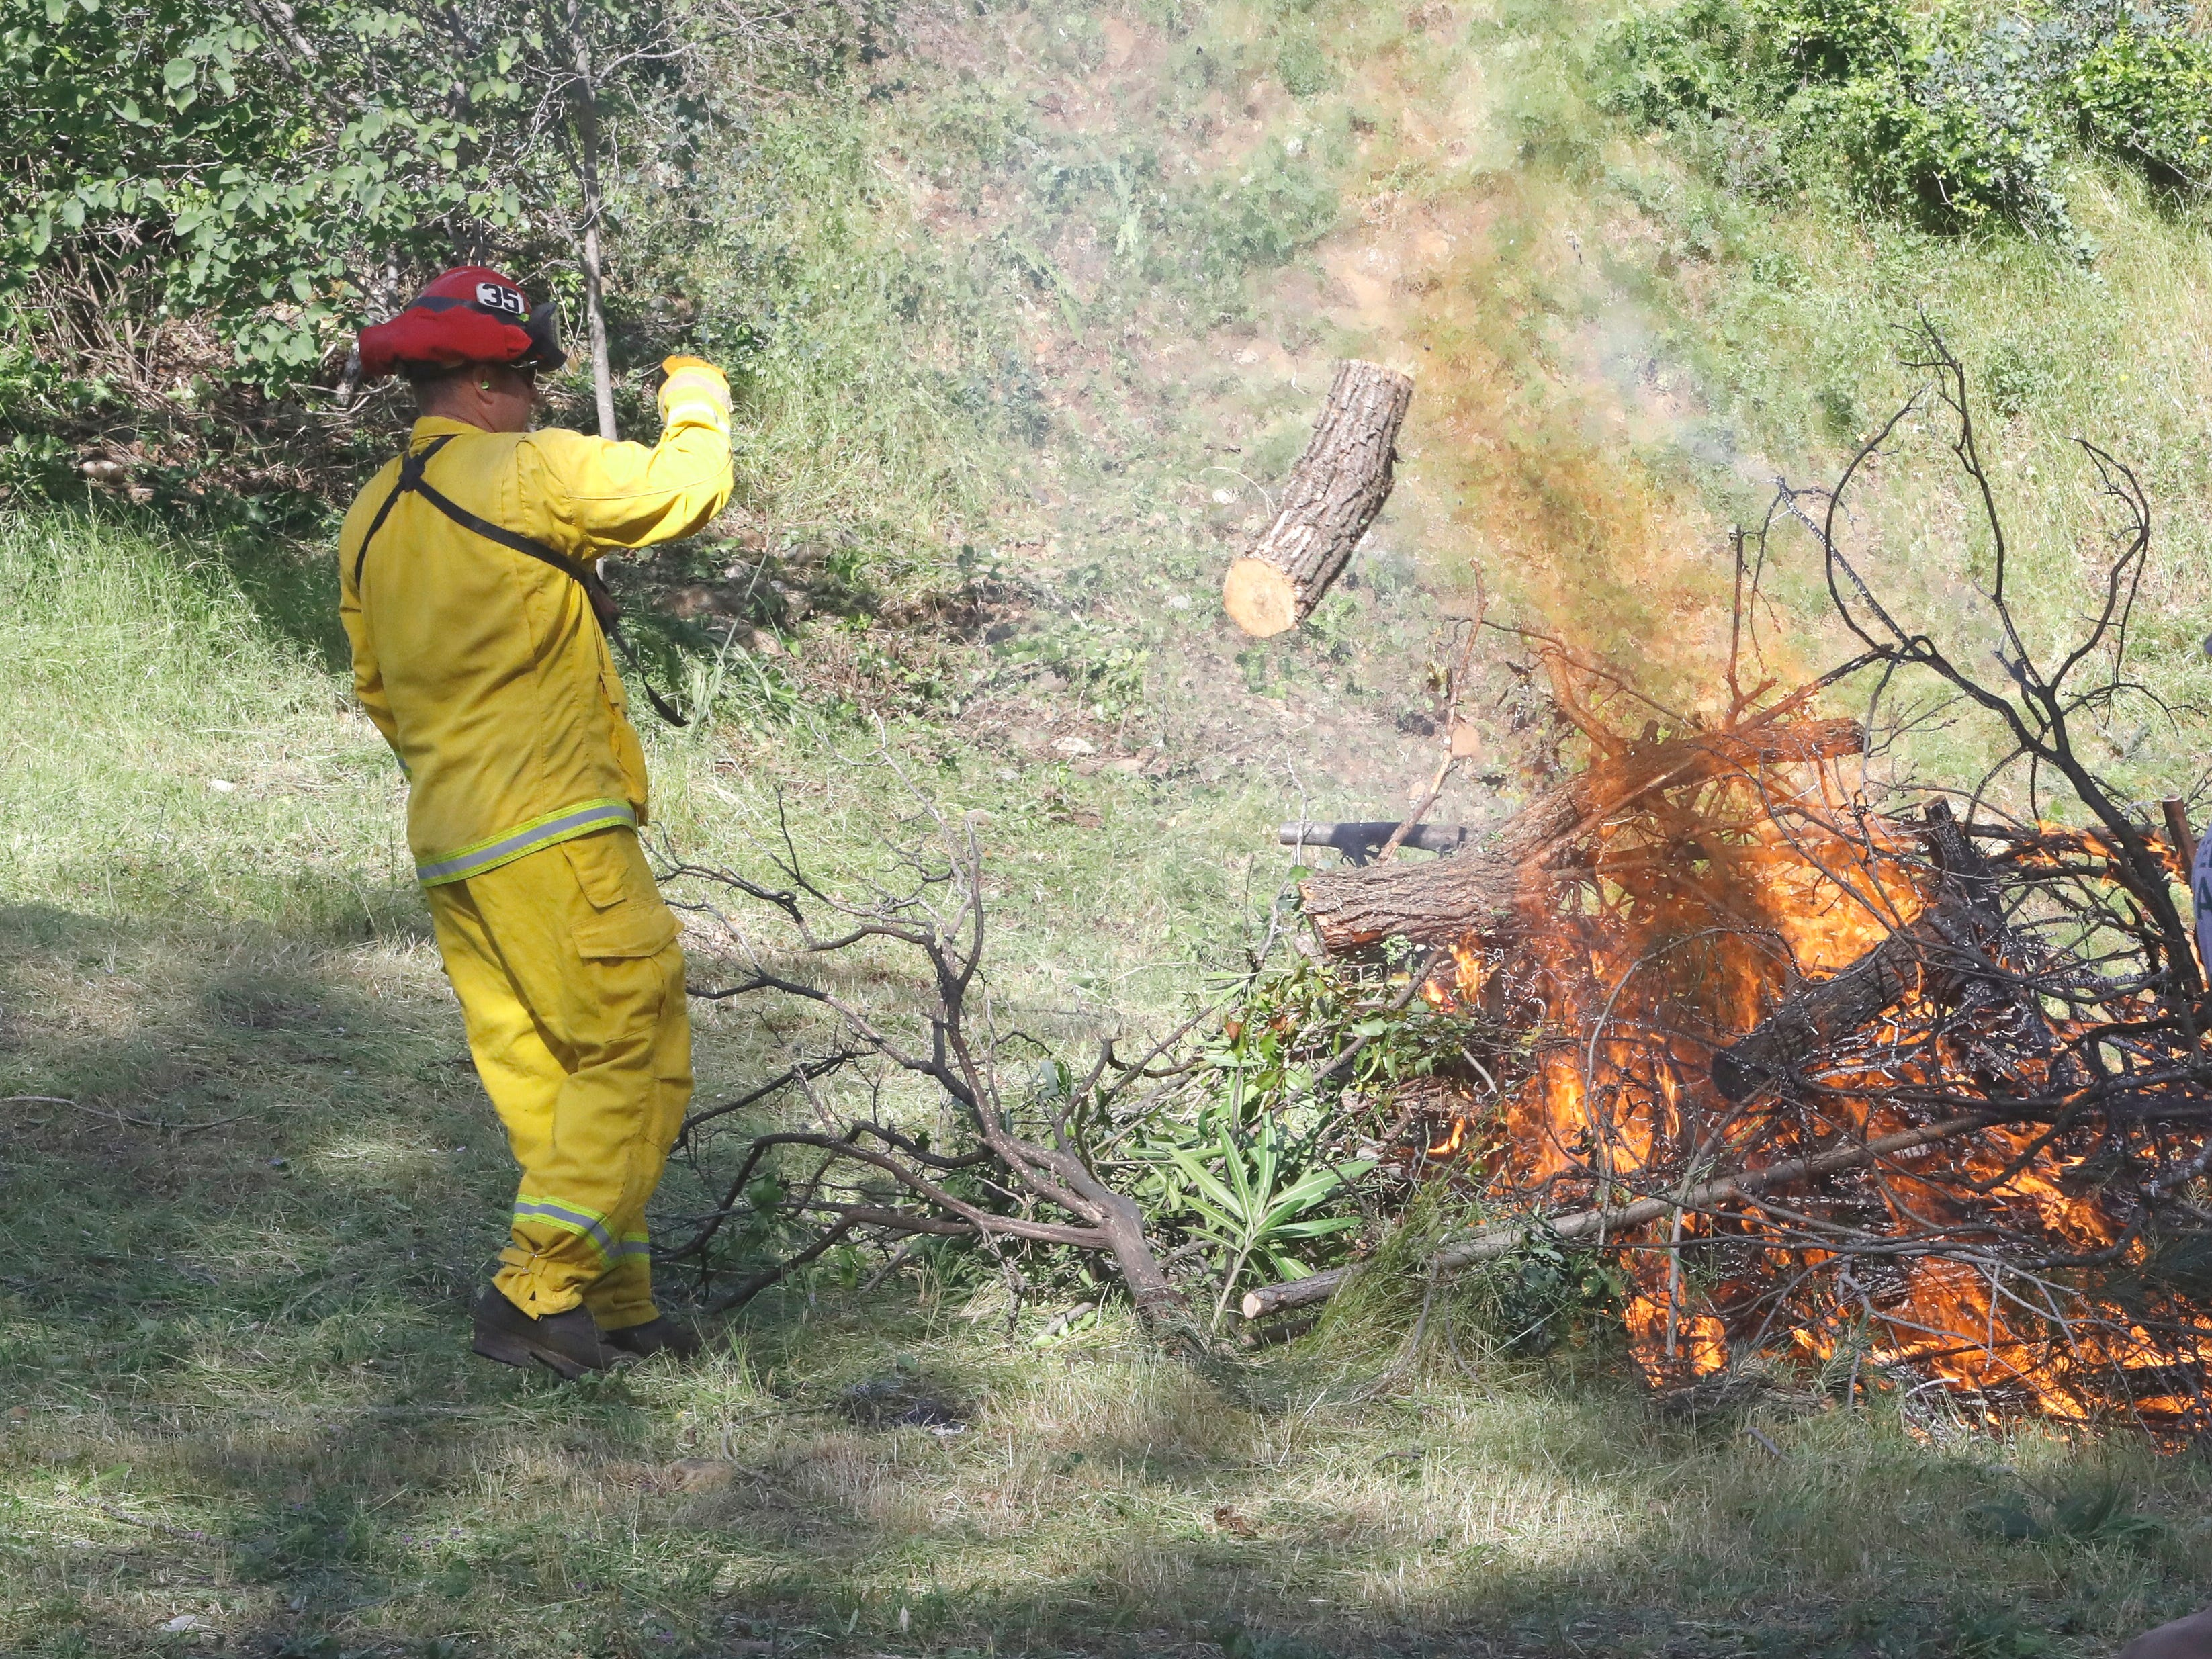 A Redding firefighter tosses wood into a burn pile during a defensible-space operation along Blazingwood Drive on Saturday, May 4, 2019.